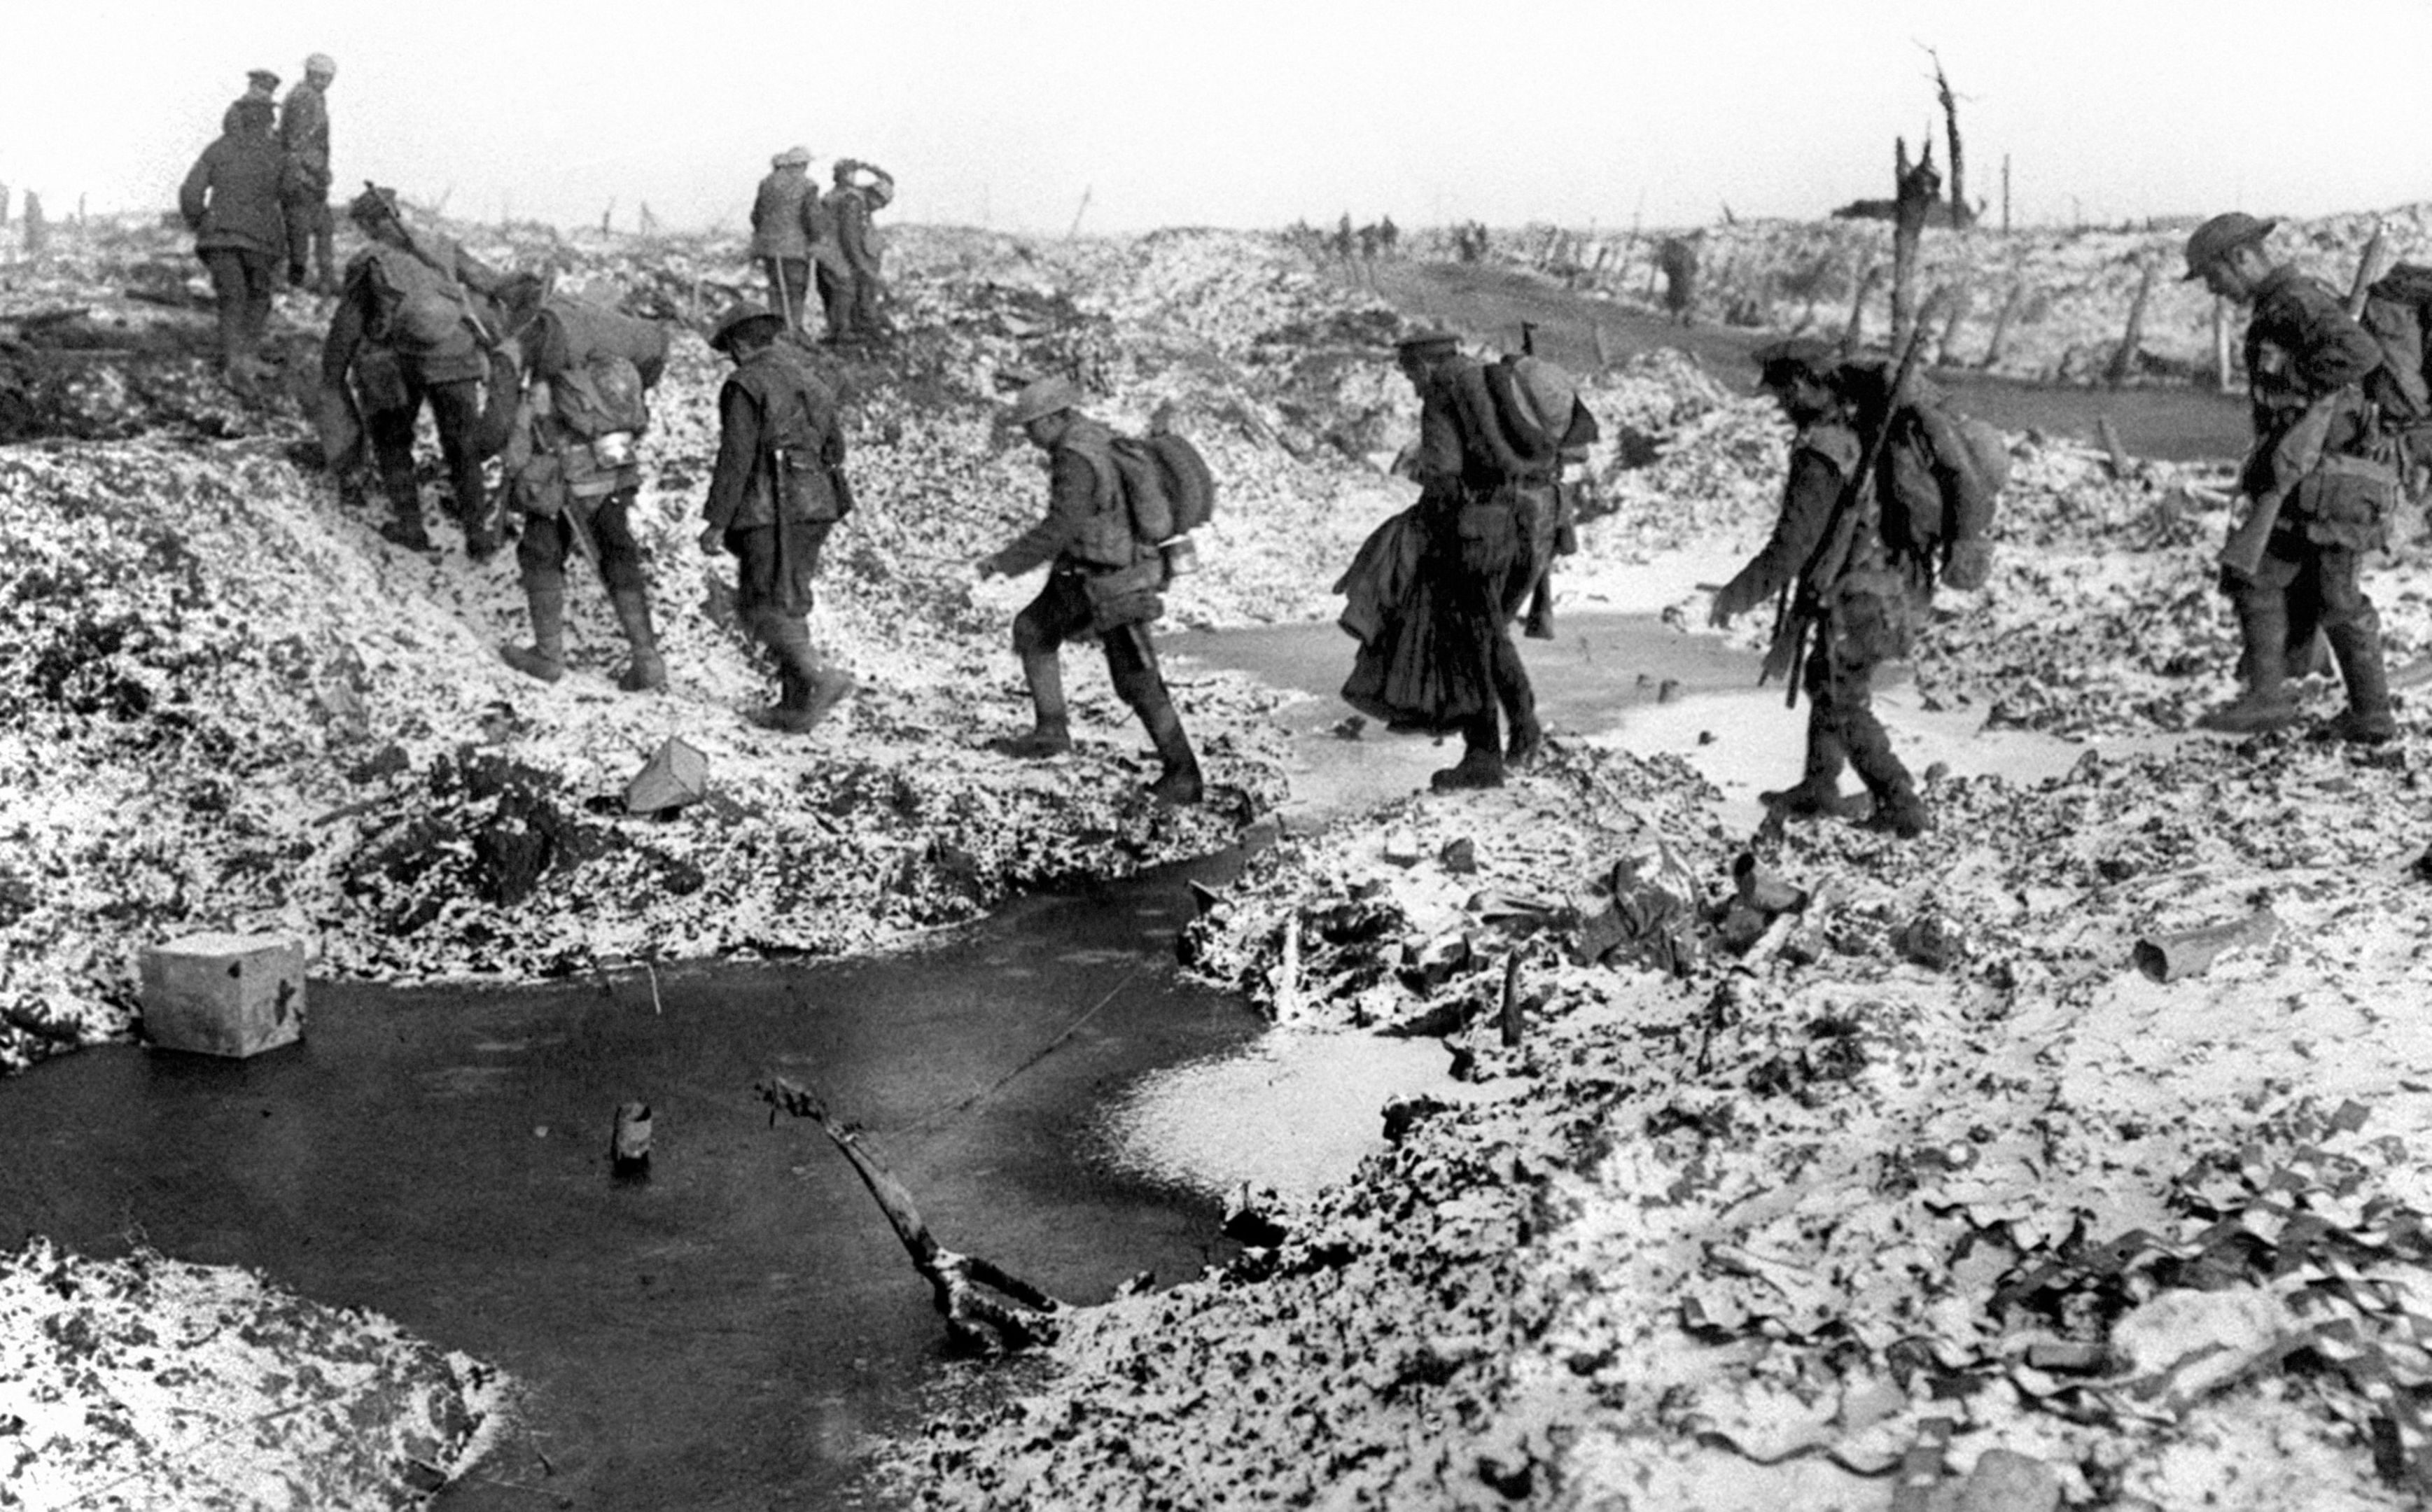 Soldiers had to trek through dreadful conditions on the Western Front.